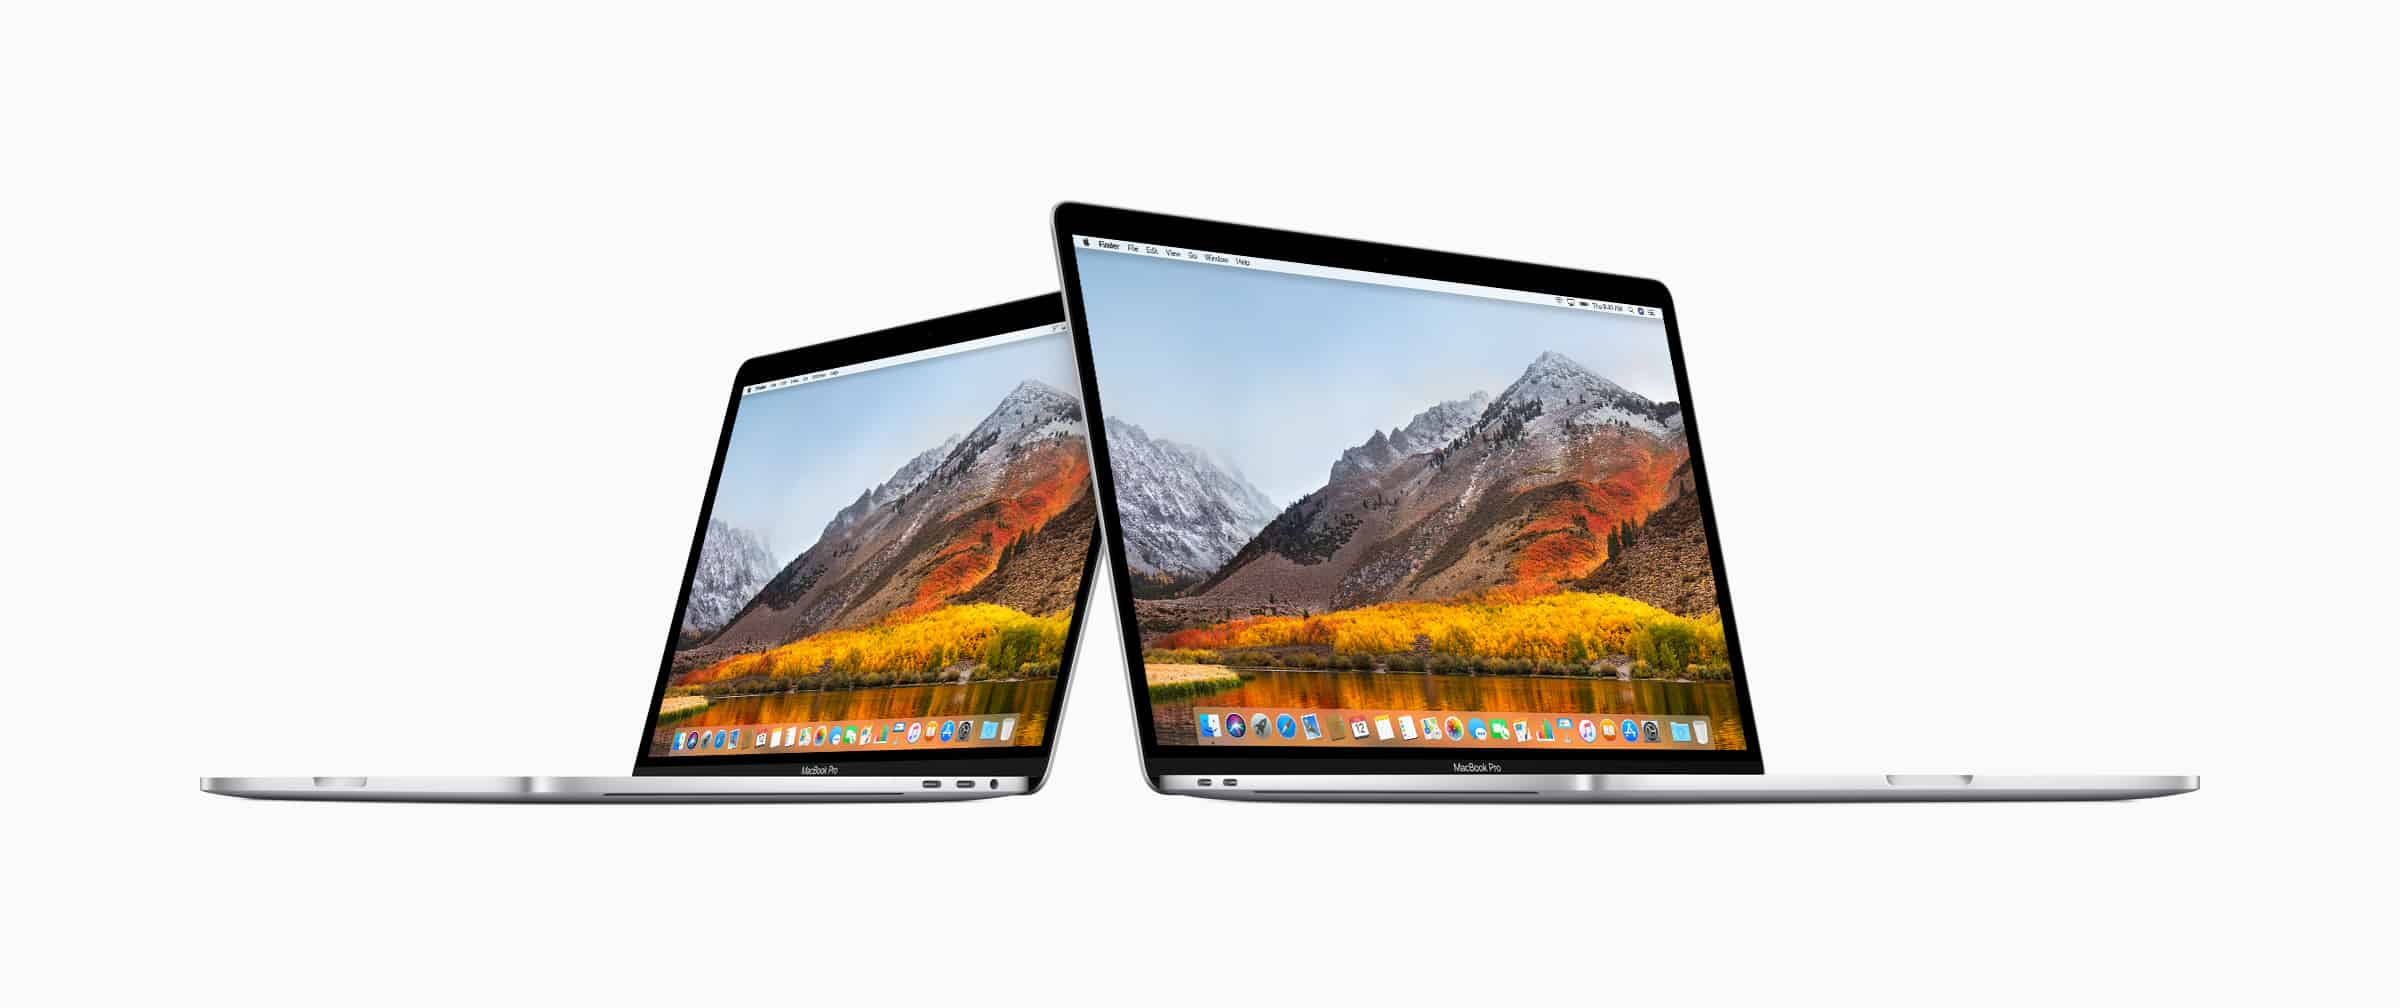 The new 13-inch and 15-inch MacBook Pro models with Touch Bar up the ante for pro users.